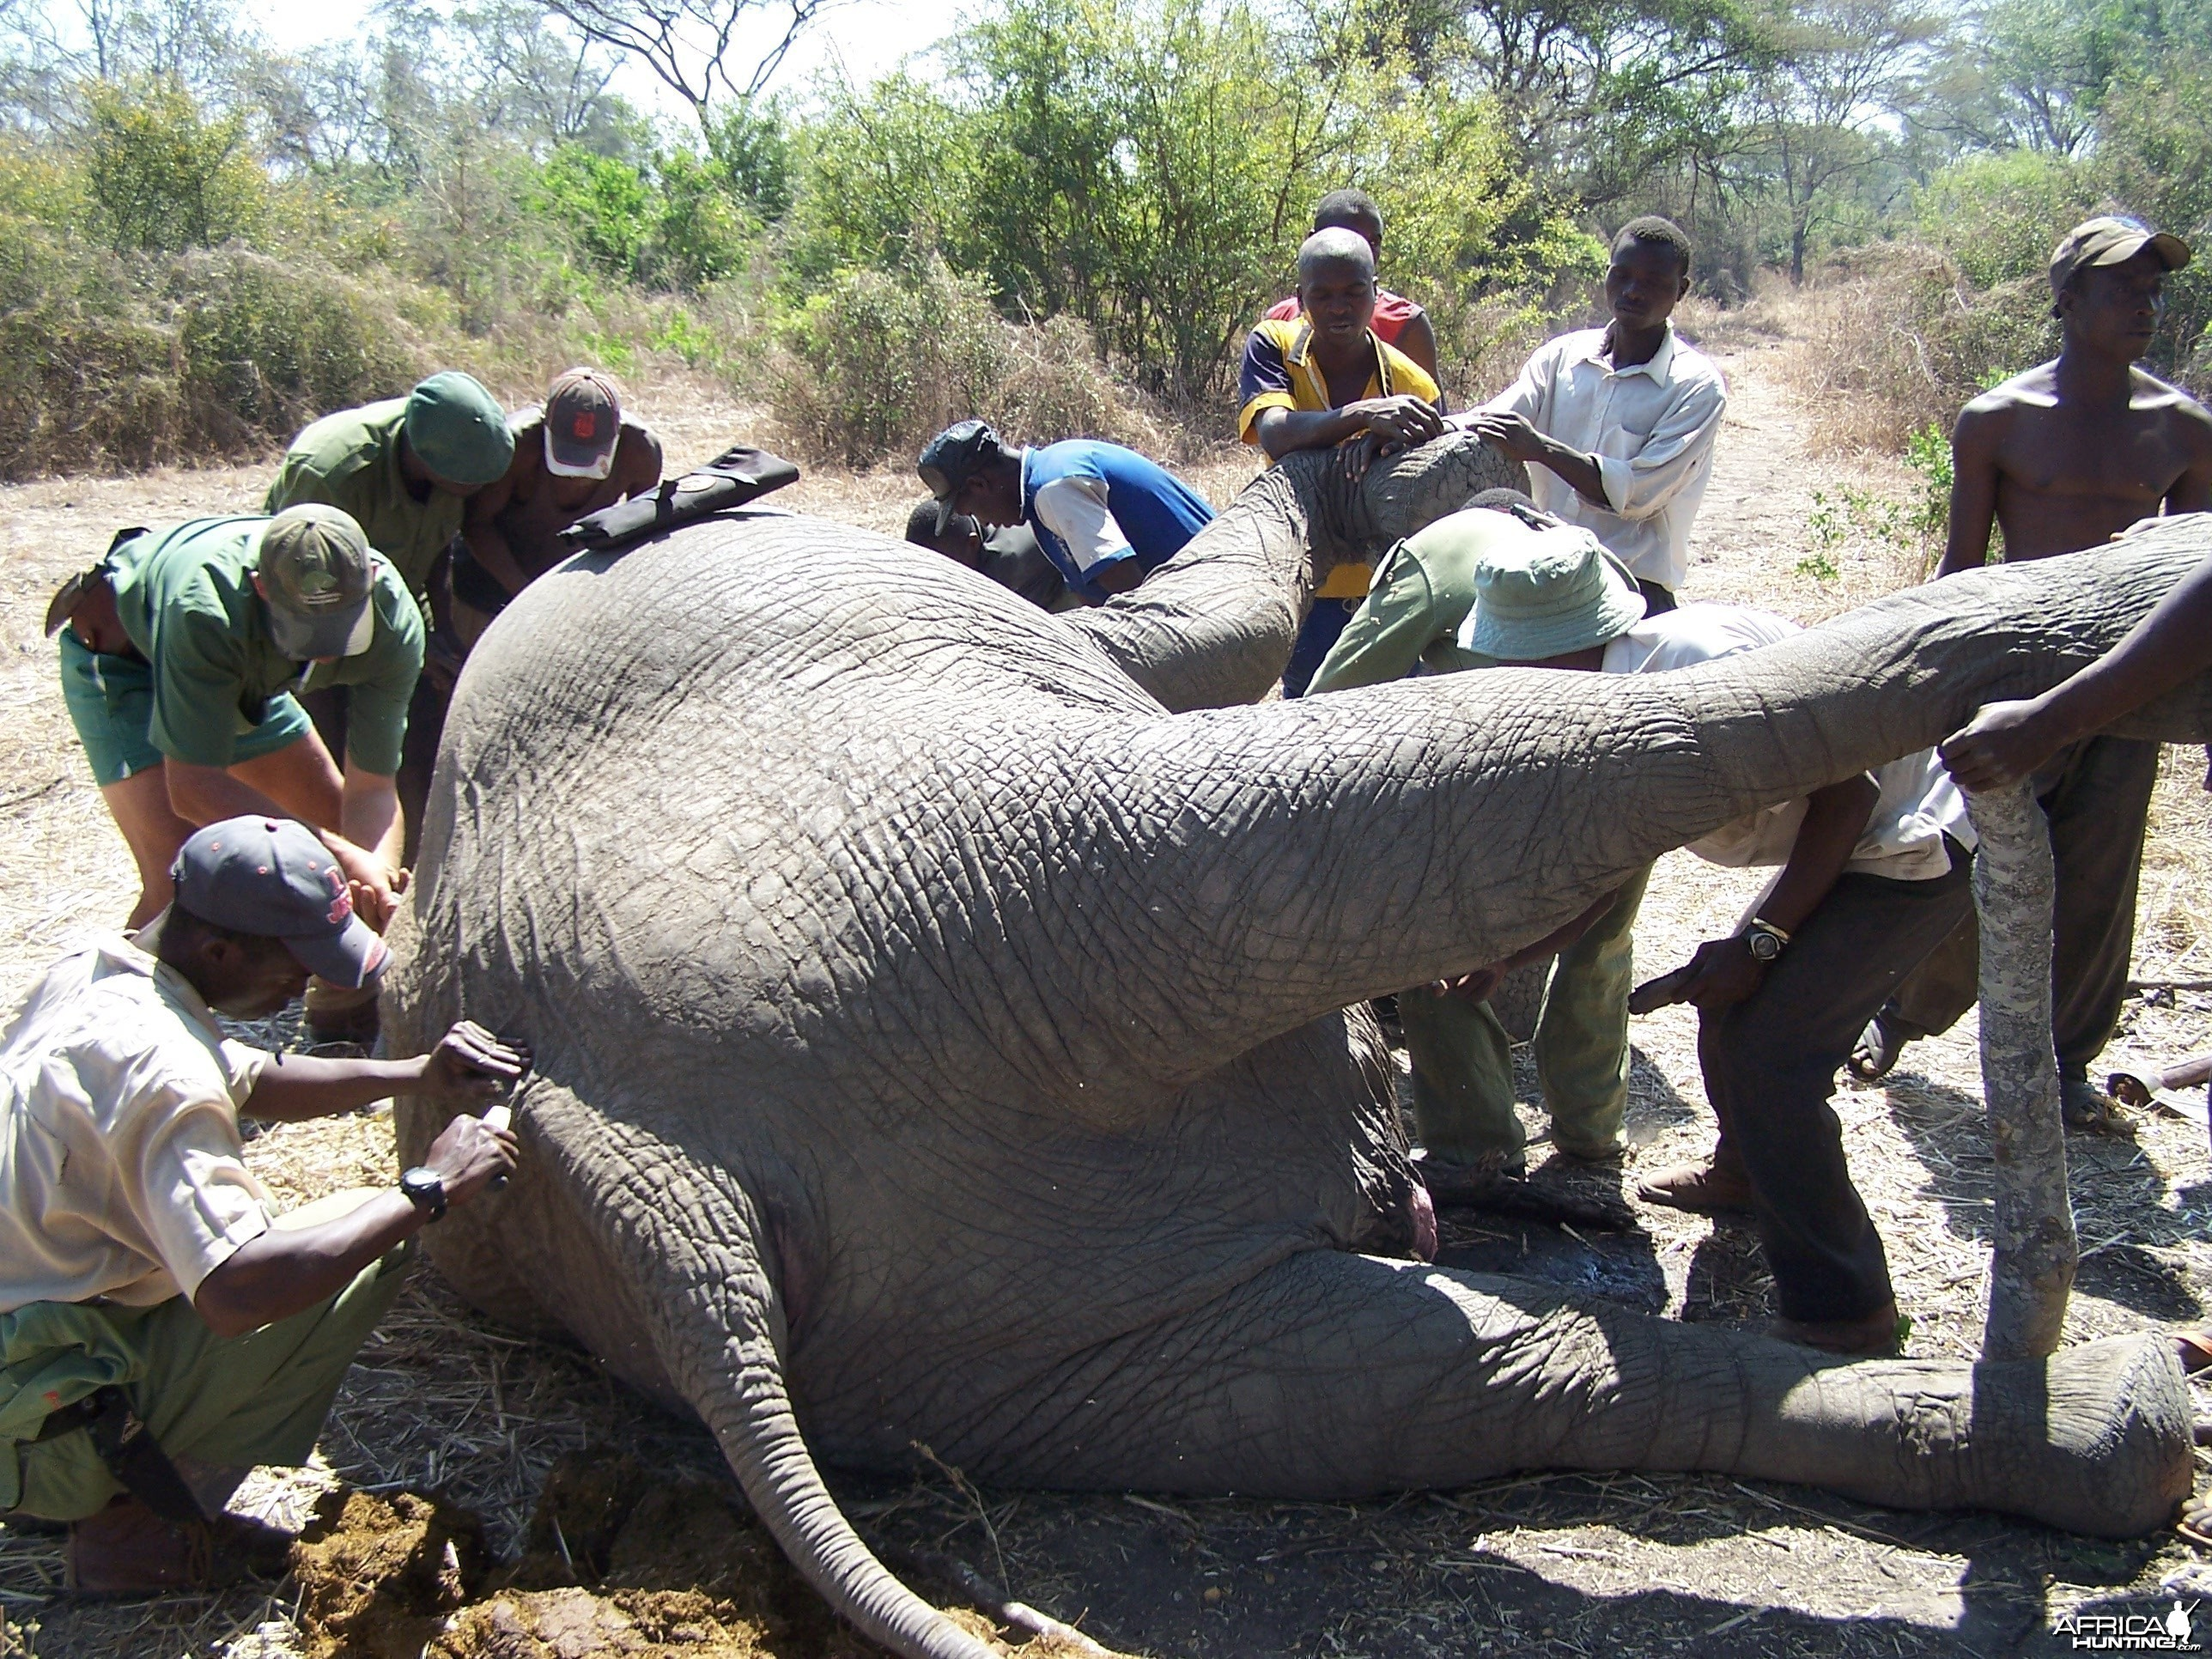 The hard work of butchering Elephant begins